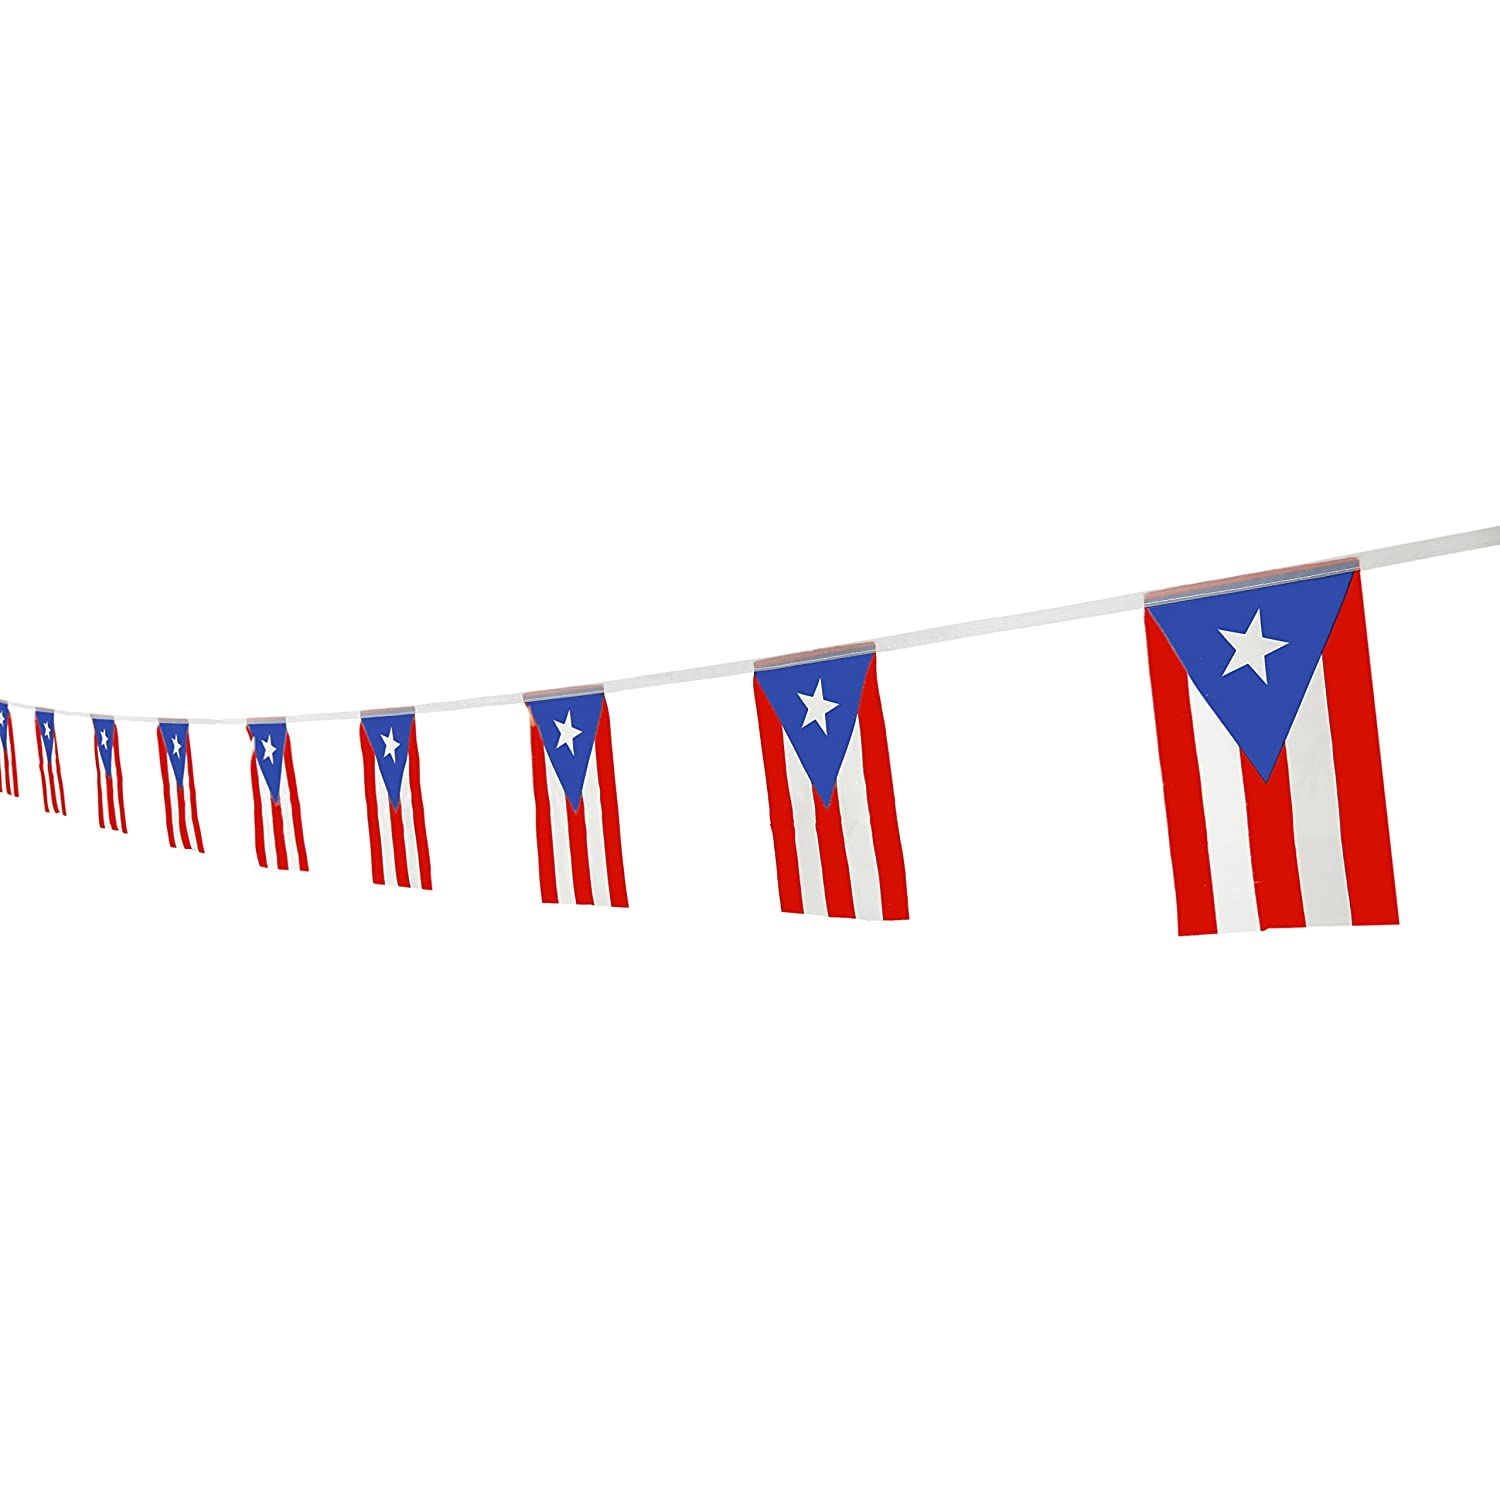 Kind girl puerto rico flag puerto rican flag100feet 76pcs national country world pennant flags bannerparty decorations supplies for olympicsbarindoor